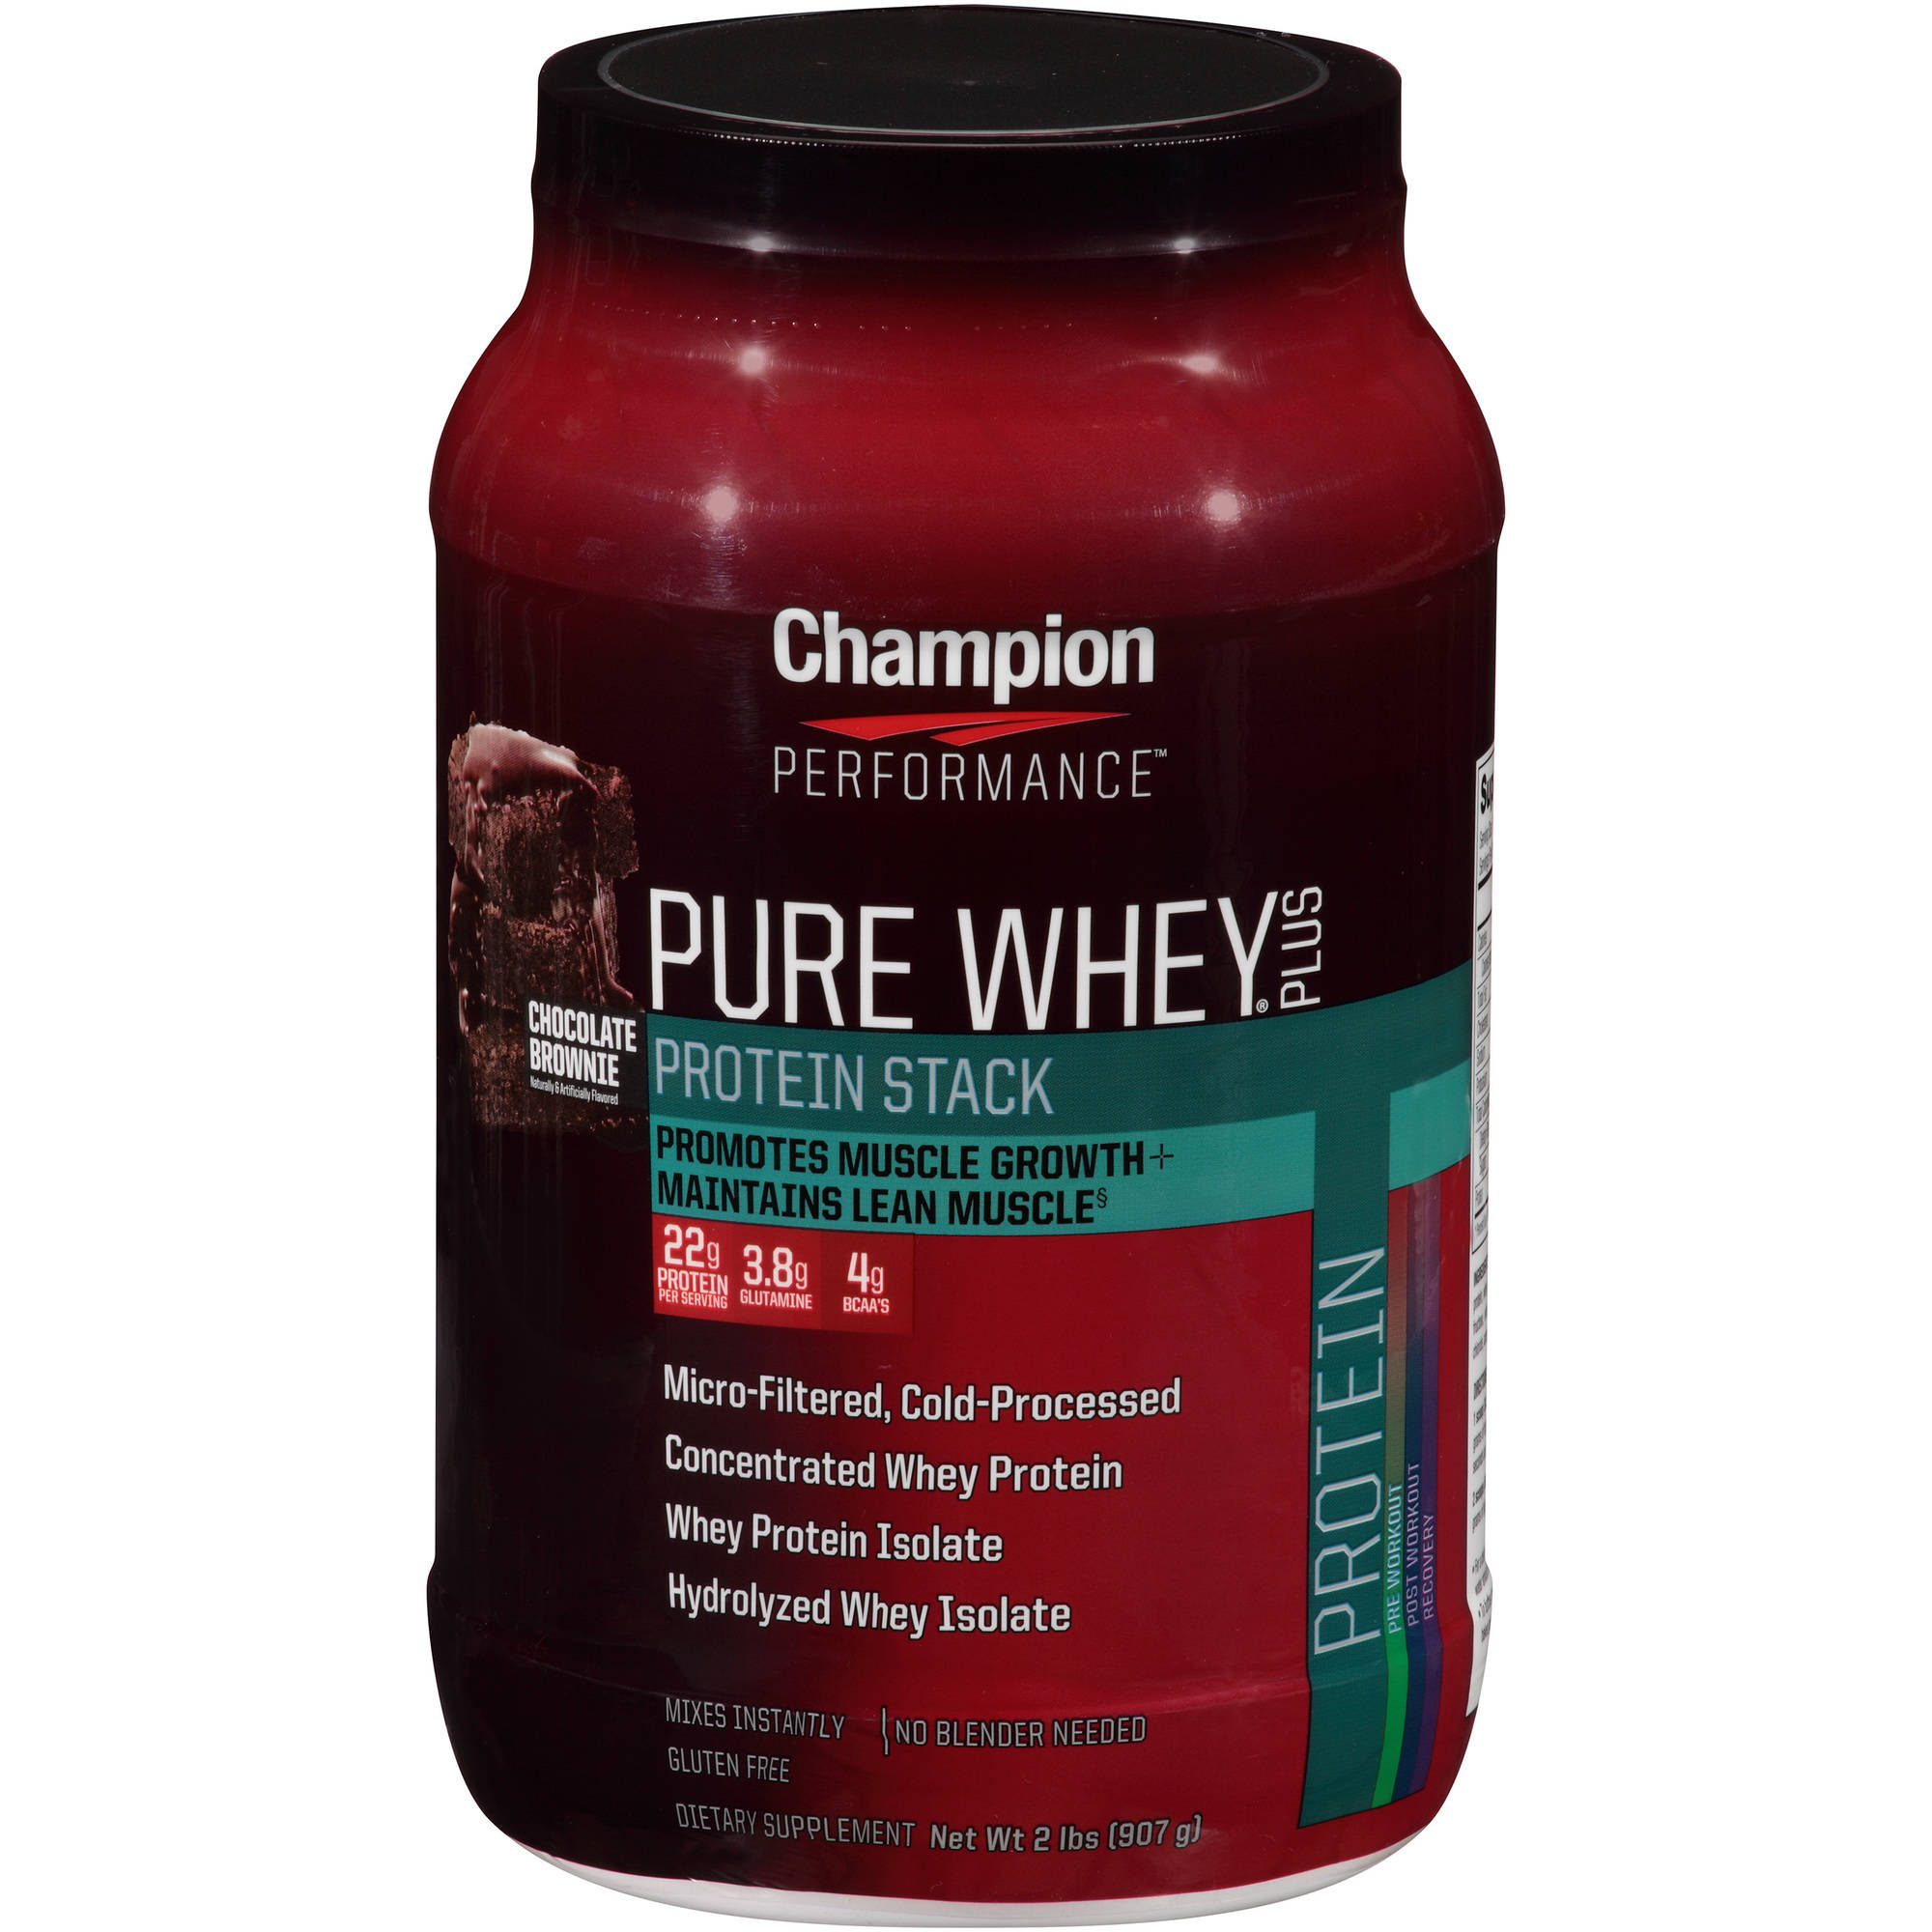 Champion Performance Chocolate Brownie Pure Whey Plus Protein Stack Dietary Supplement, 2 lbs